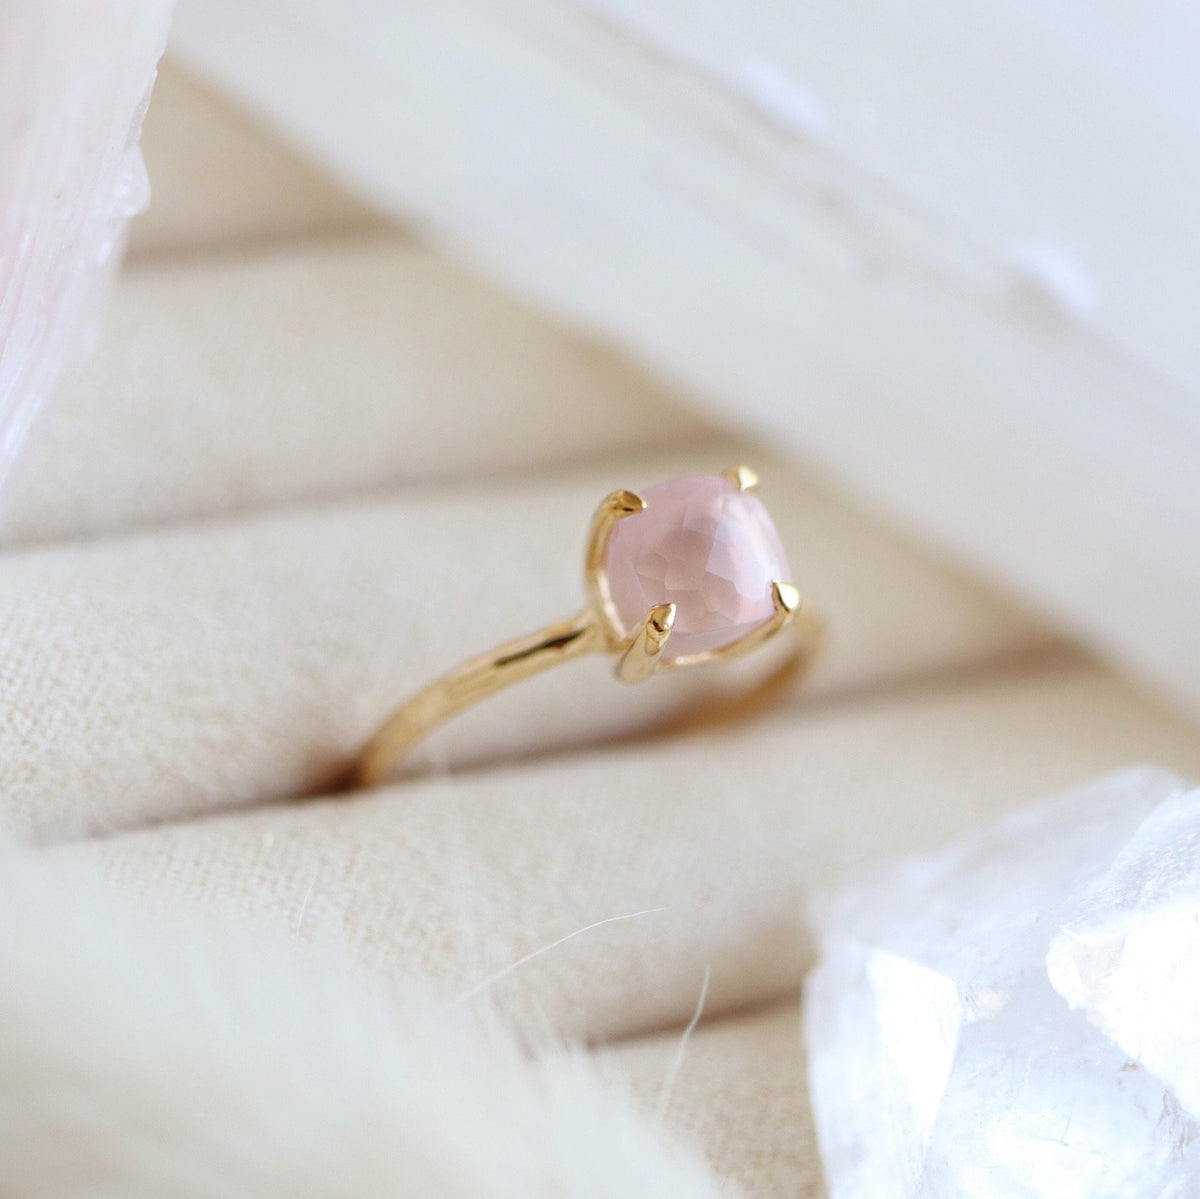 MINI PROTECT RING PINK QUARTZ & GOLD - SO PRETTY CARA COTTER